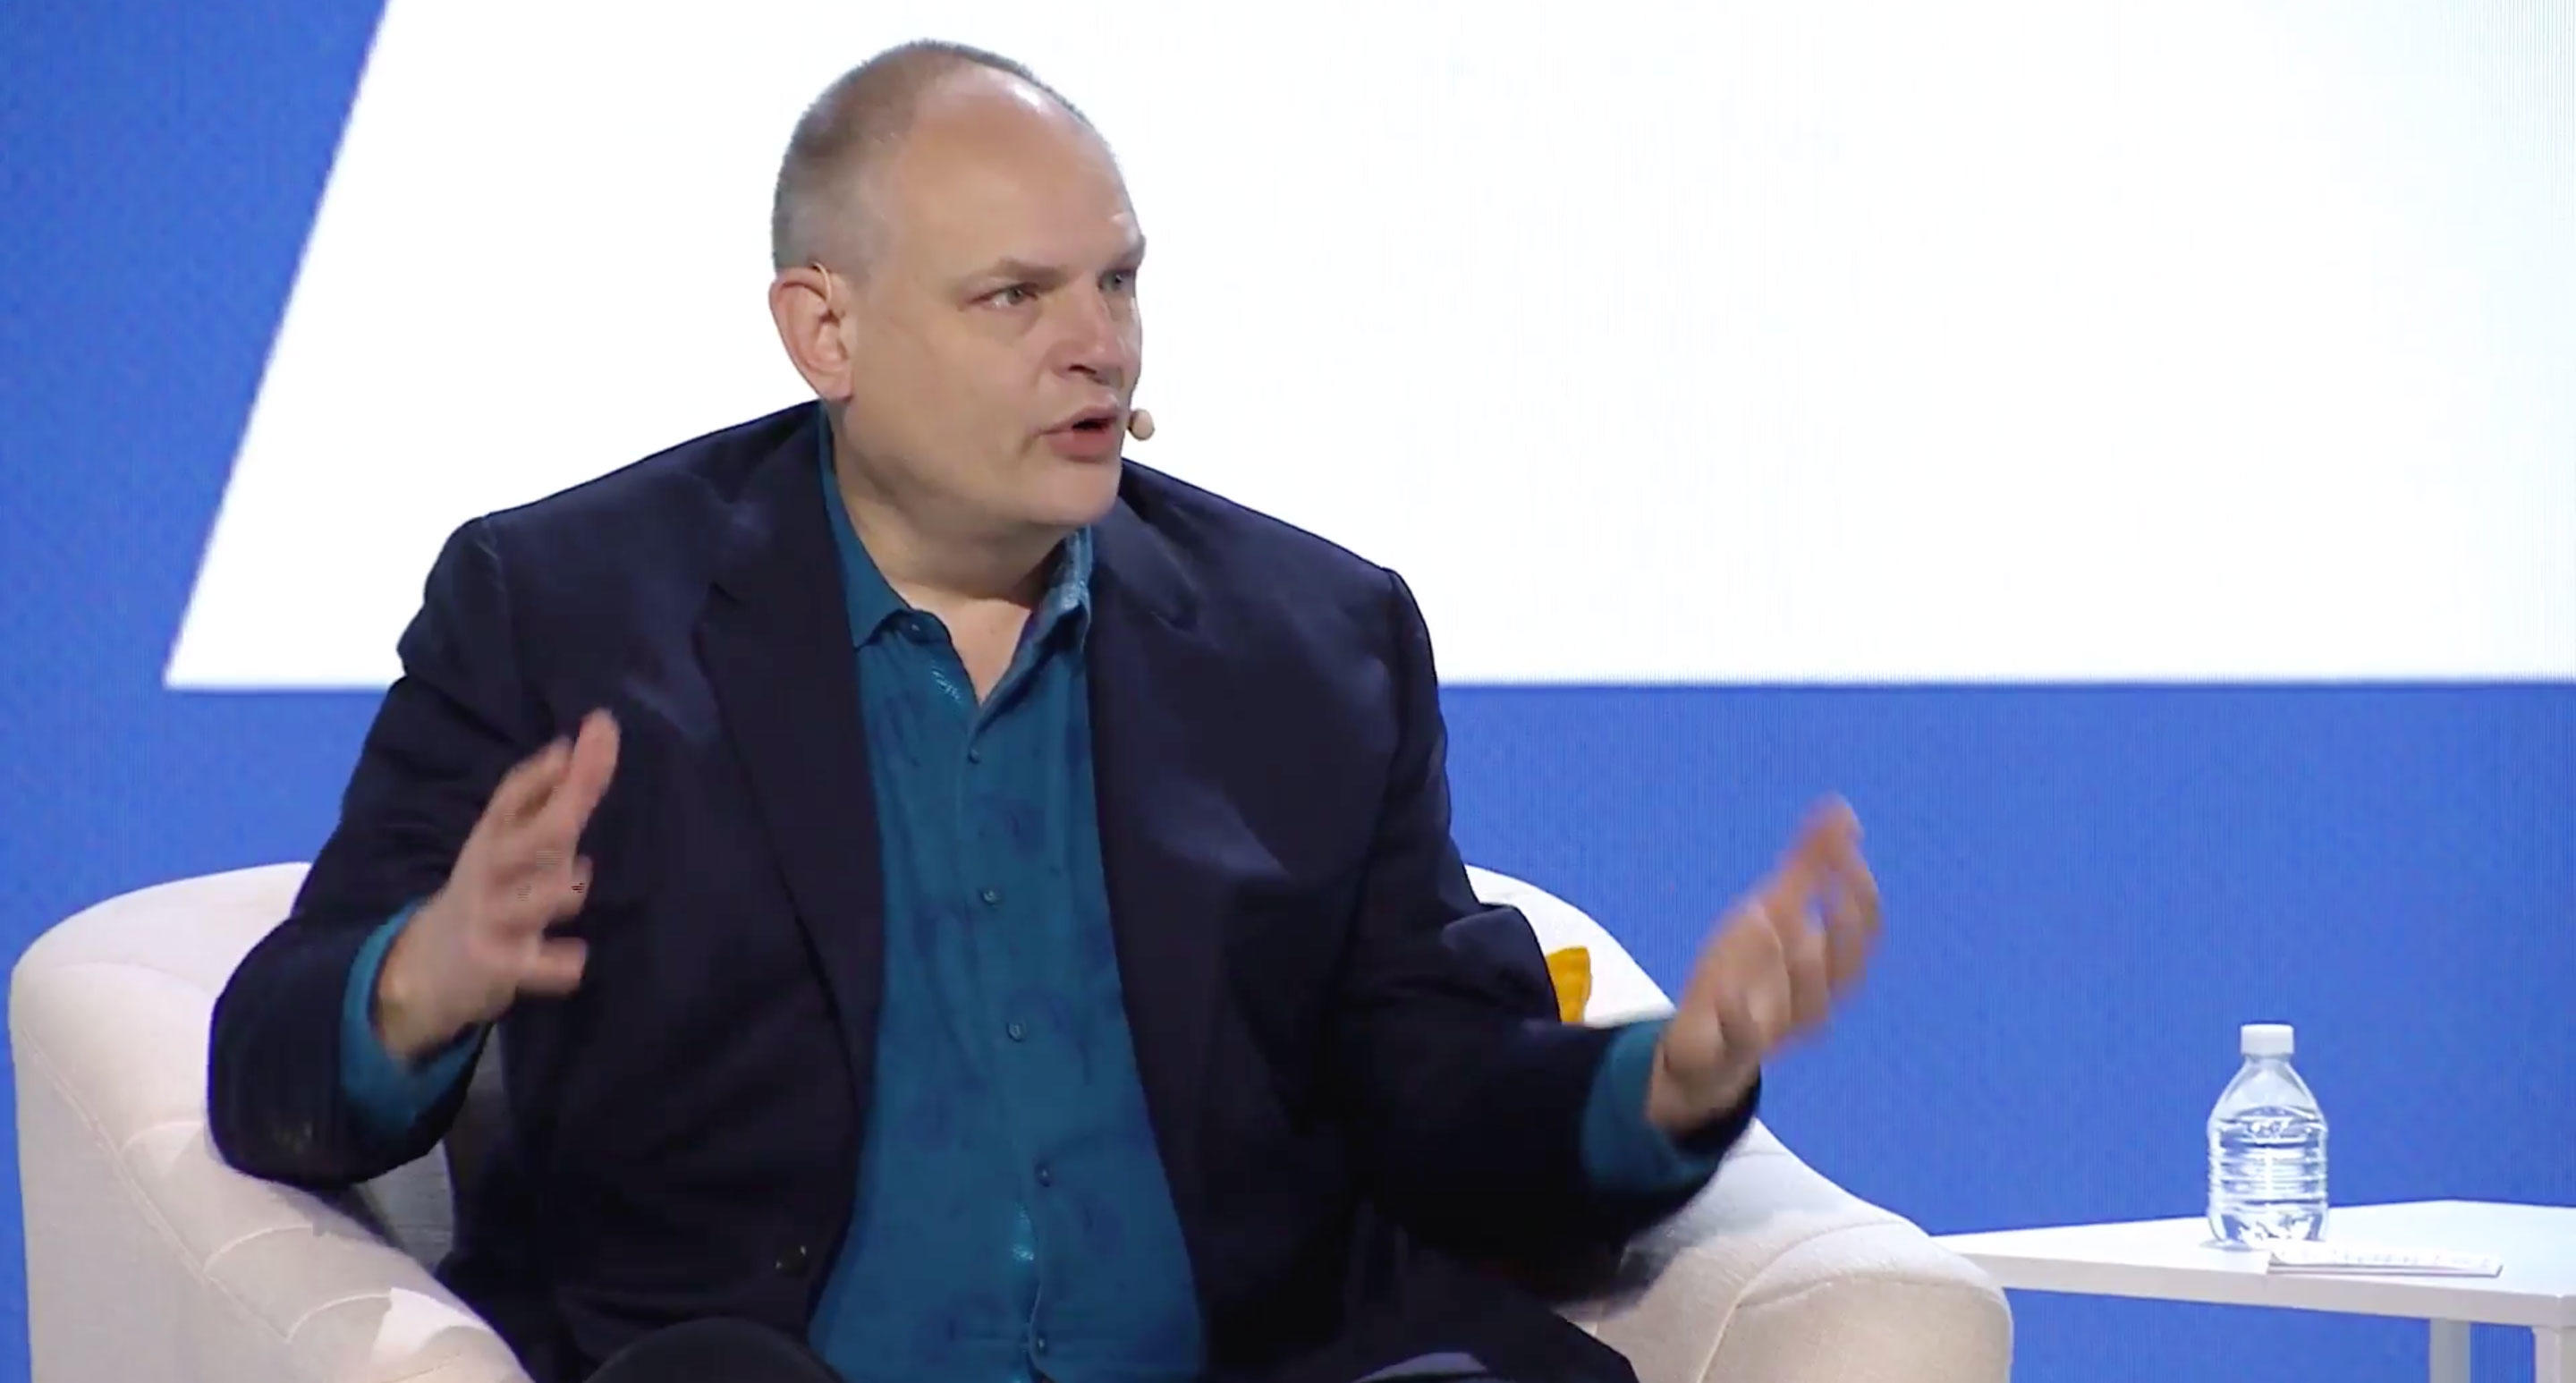 Andrew Moore, VP of AI for Google Cloud